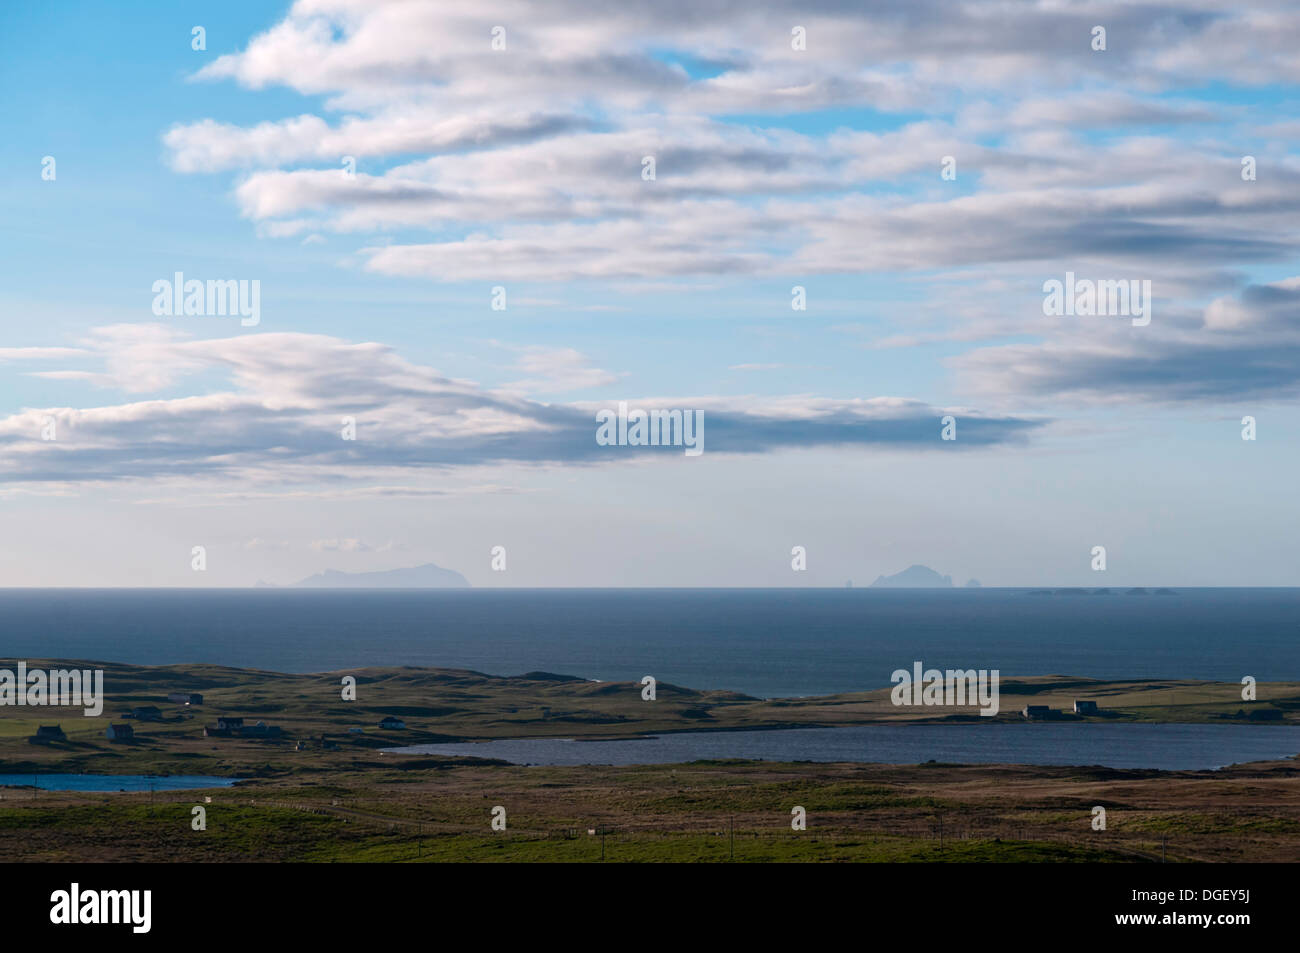 Looking Across the Atlantic Ocean at the St Kilda Archipelago from North Uist - Stock Image